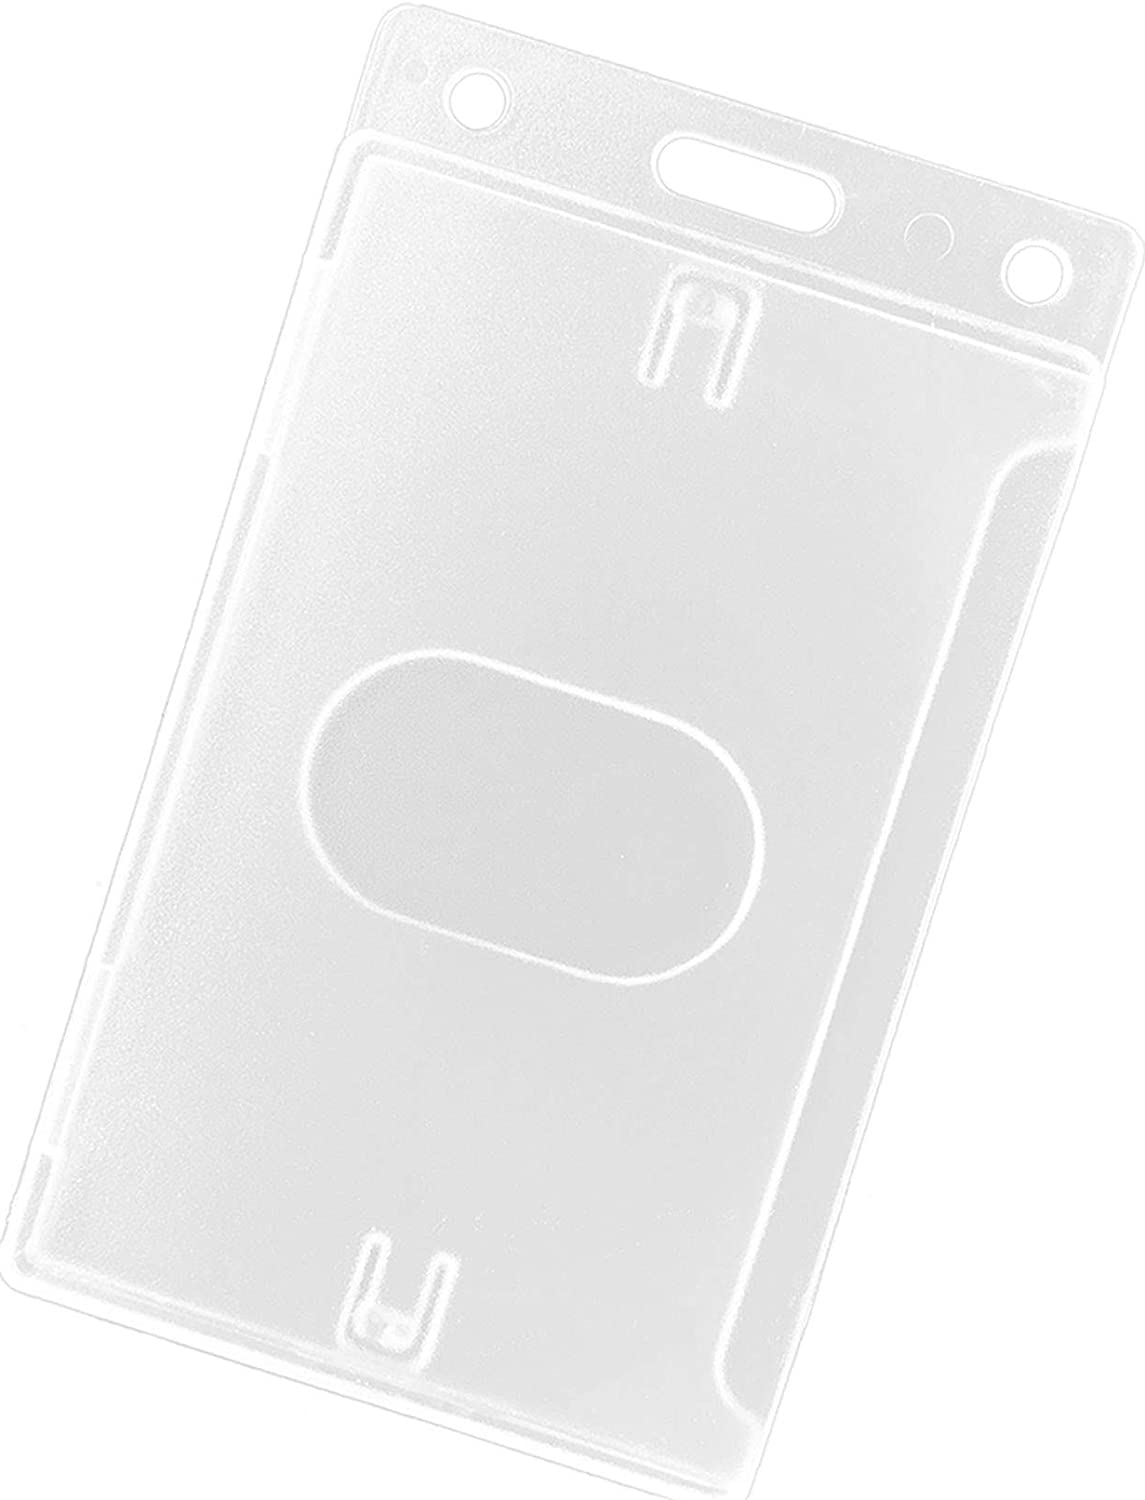 Fallen One 2 Pack Hard Same day shipping Courier shipping free Plastic ID Hol Vertical Holder Card Badge